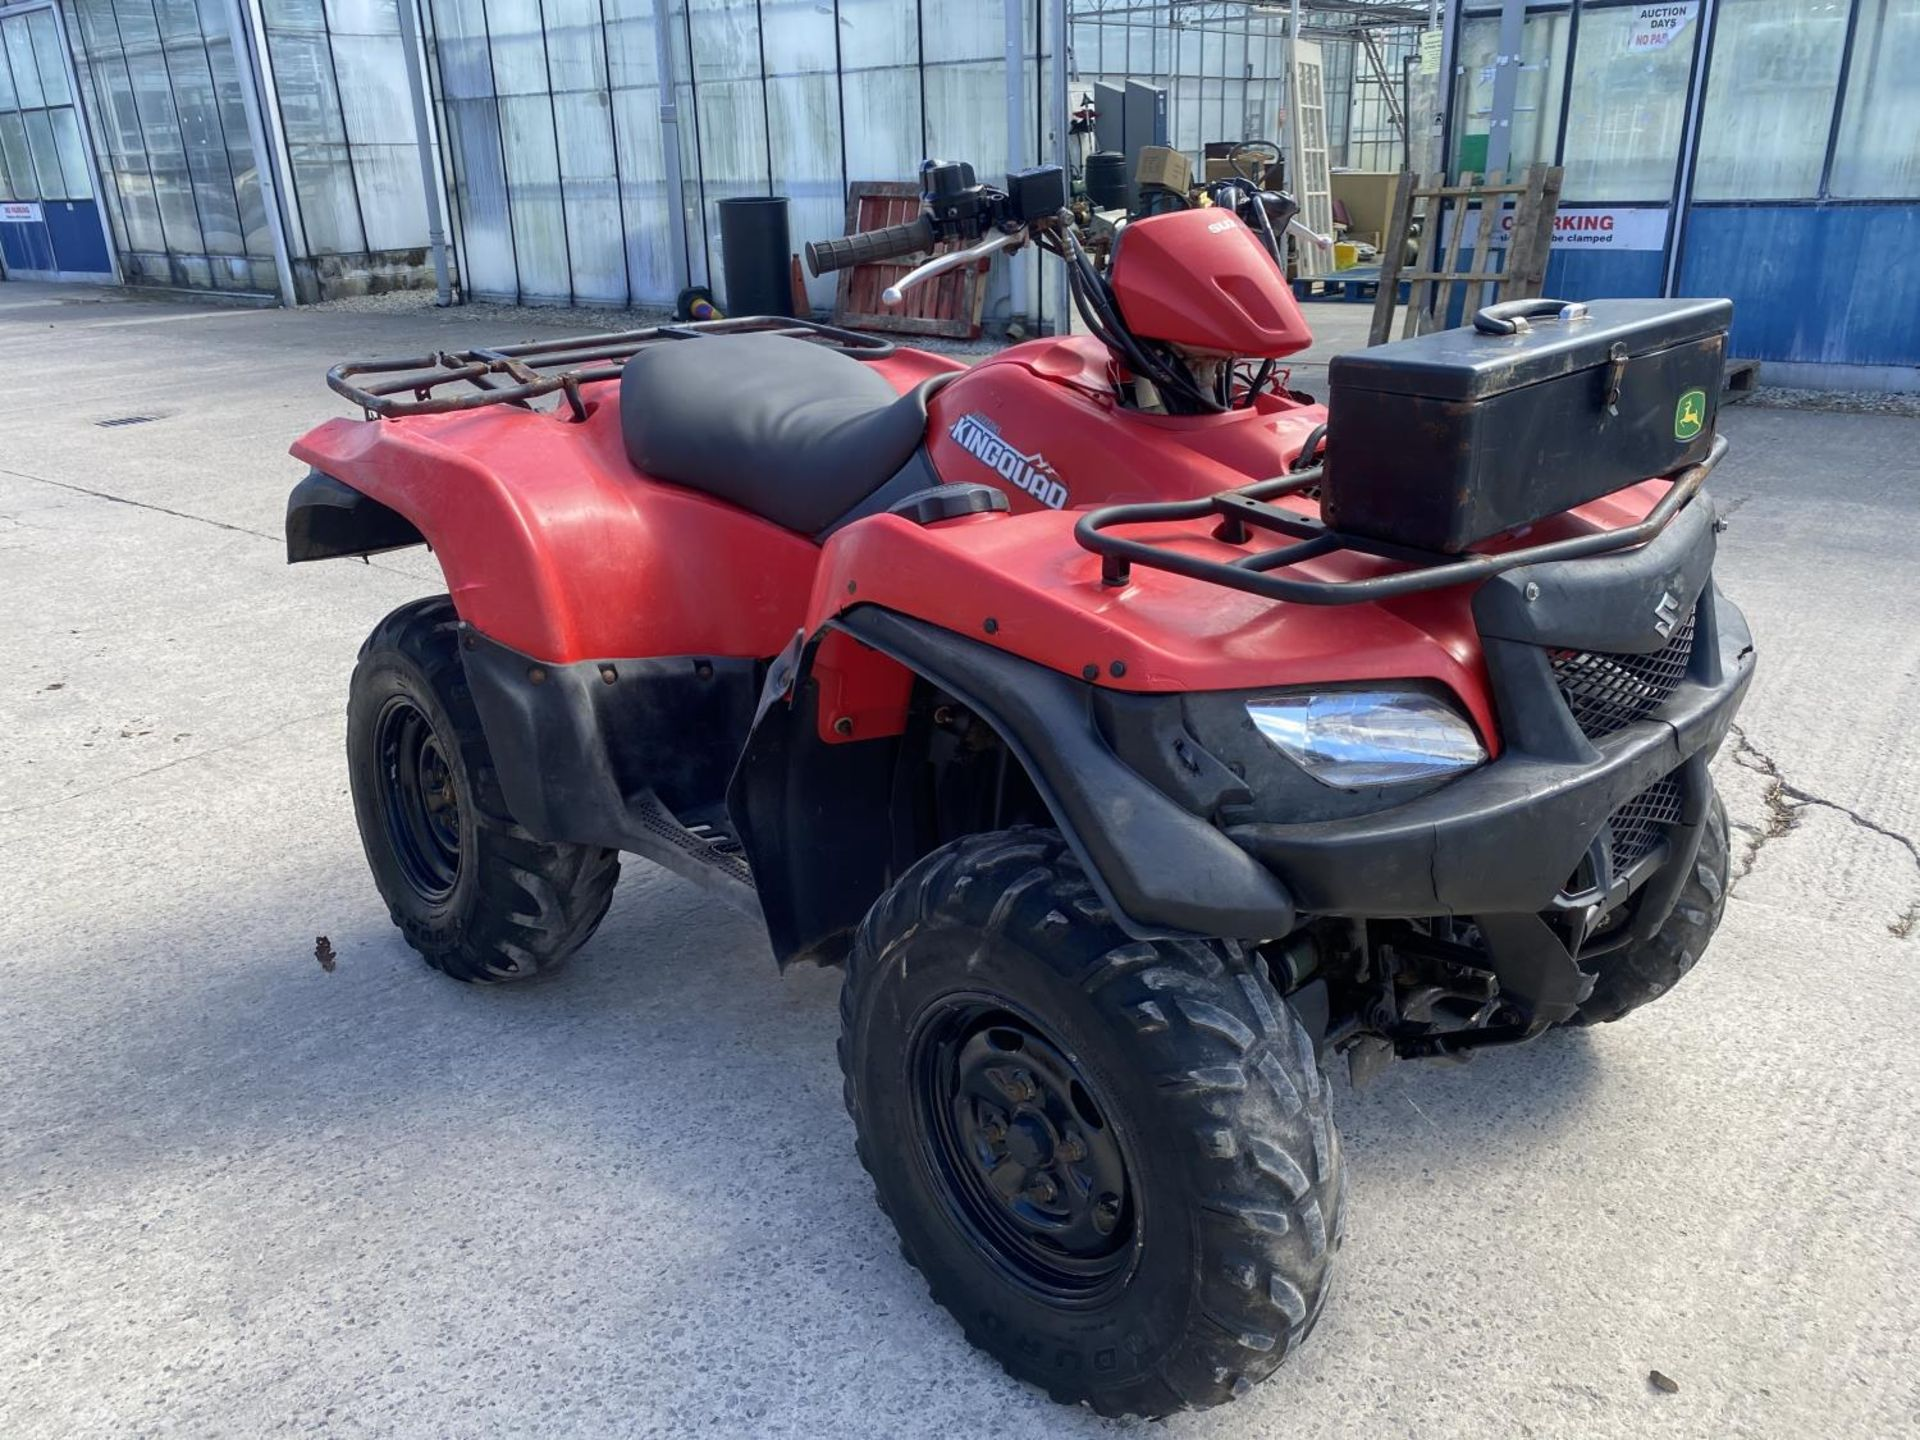 A 2014 SUZUKI KING QUAD, 500 CC WITH POWER STEERING - SEE VIDEO OF VEHICLE STARTING AND RUNNING AT - Image 4 of 9